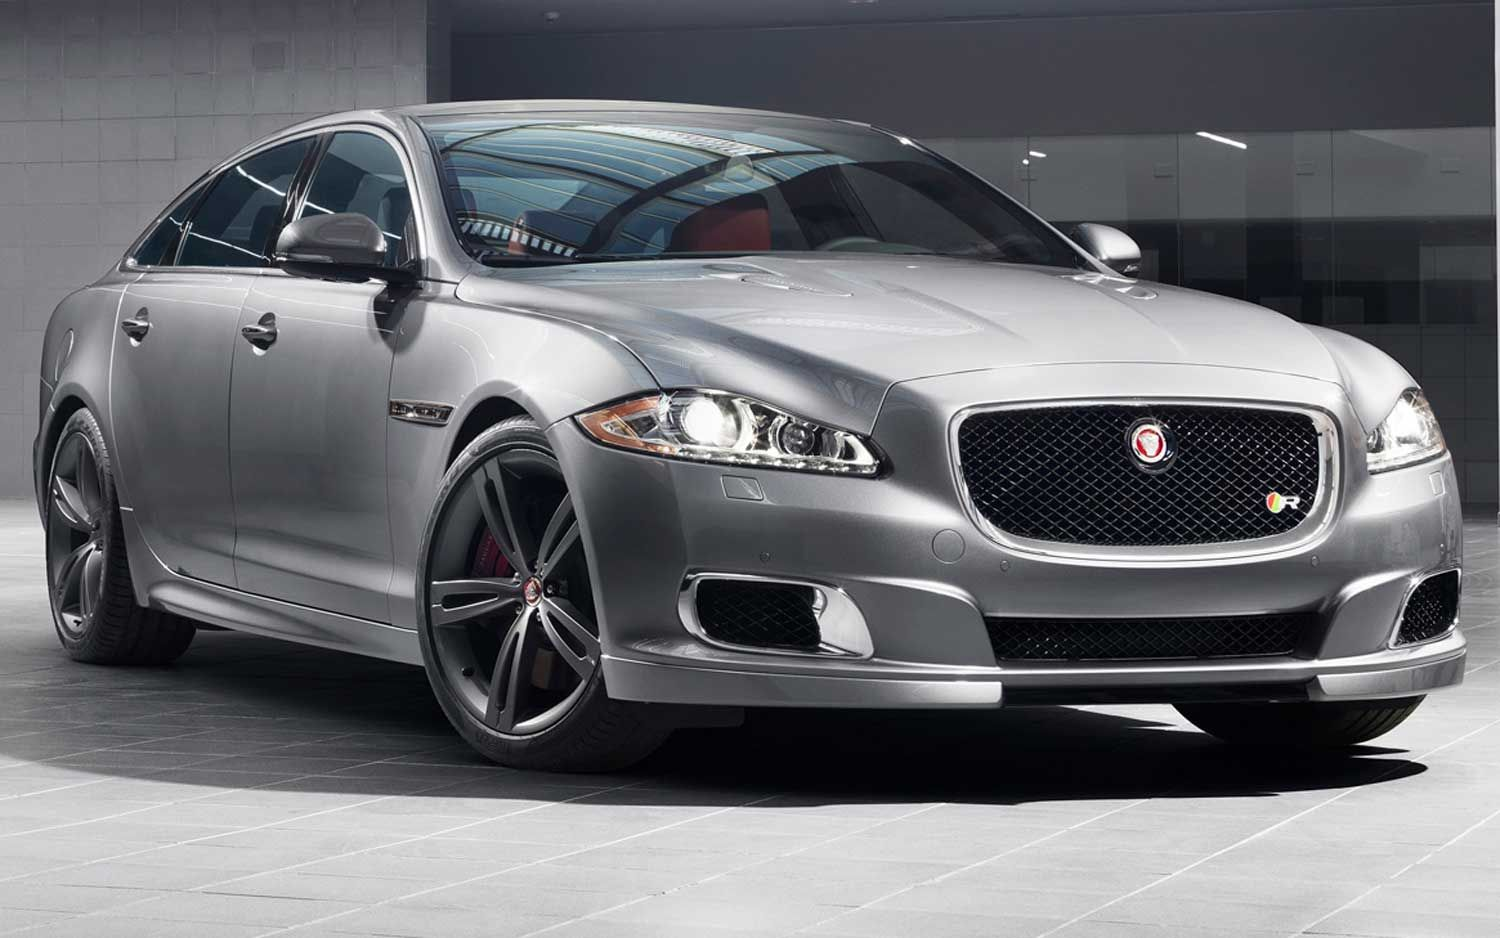 Attractive Jaguar Will Expand Its R Performance Vehicles Line Up With The Debut Of The New  2014 Jaguar XJR At The 2013 New York Auto Show. Although Not Many Details  On ...